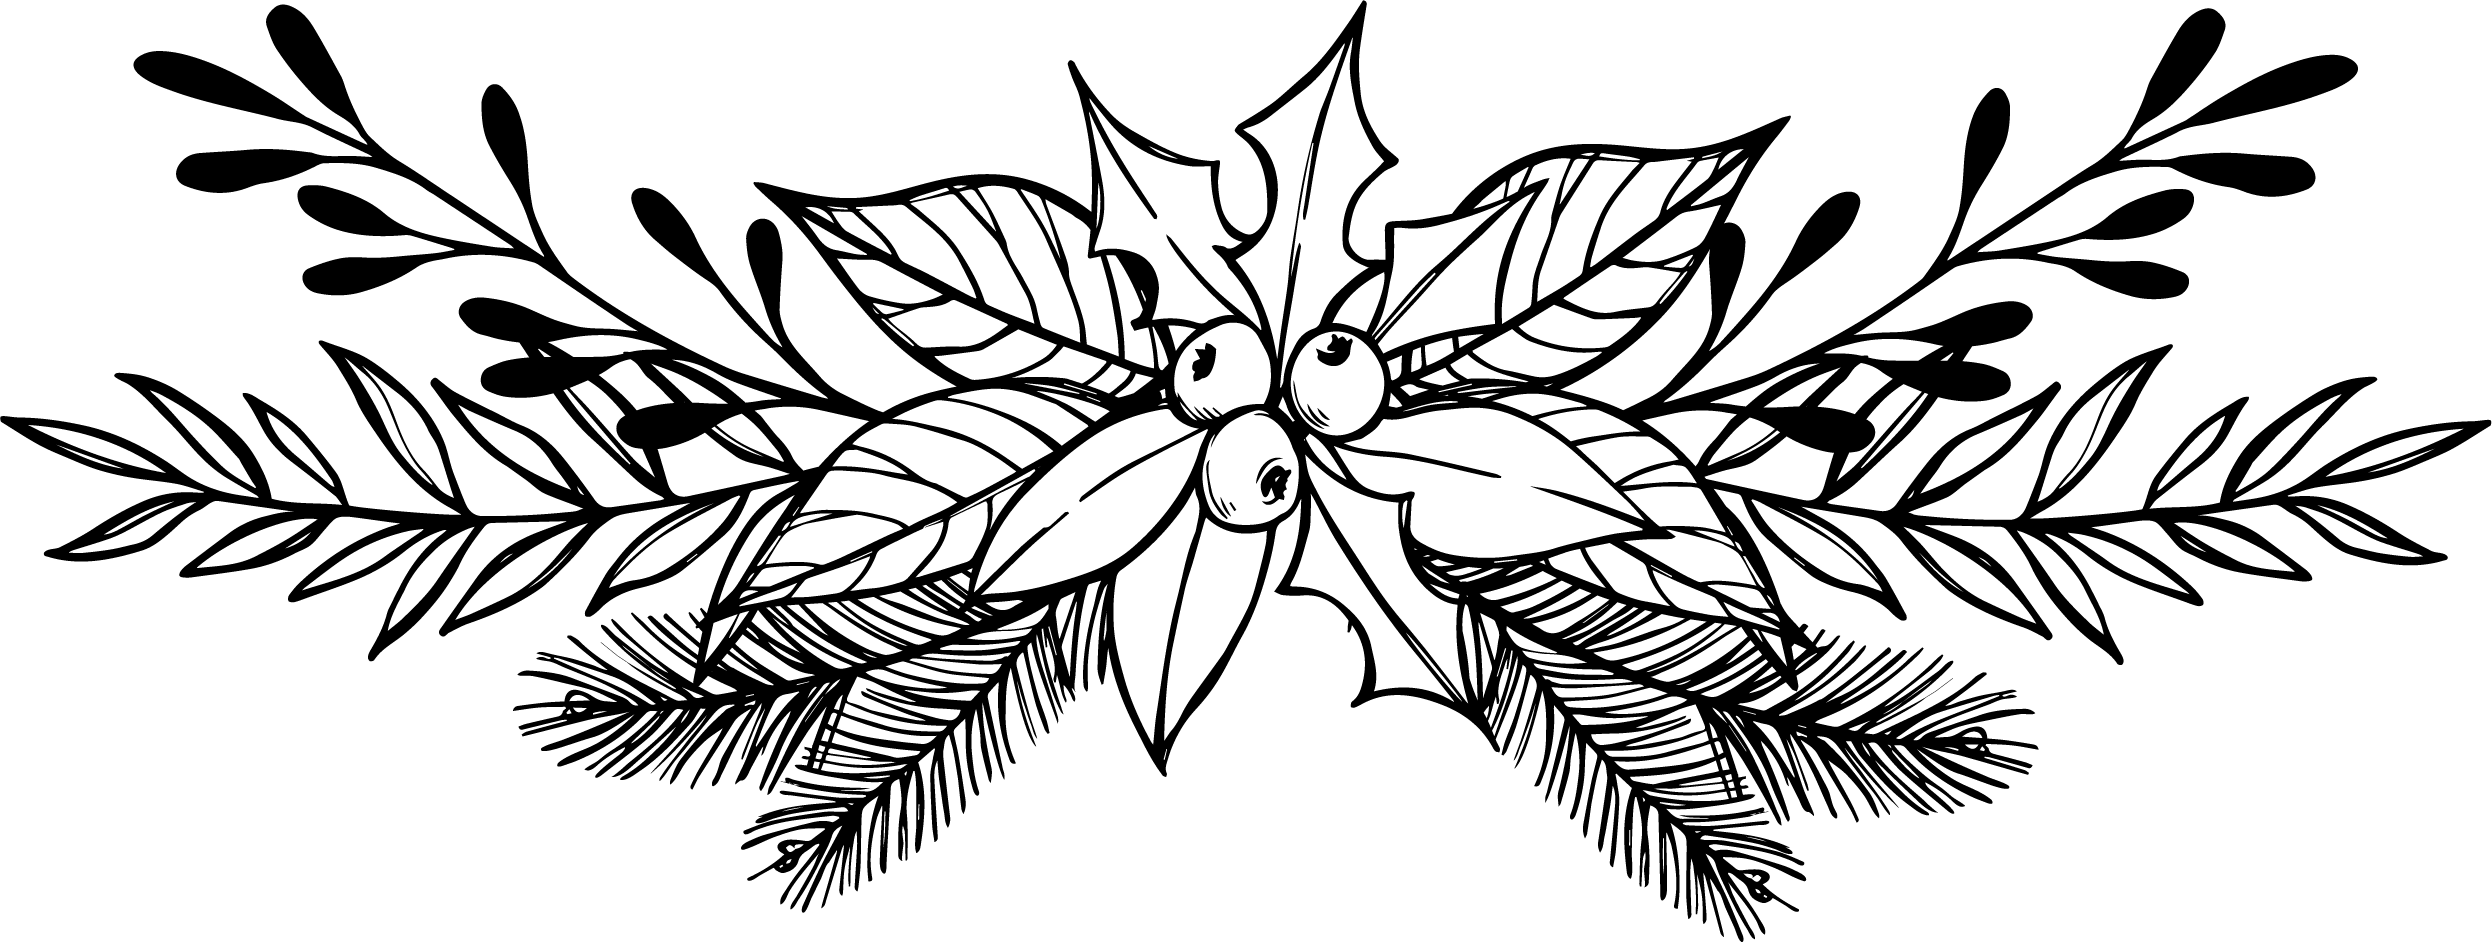 branch (7).png